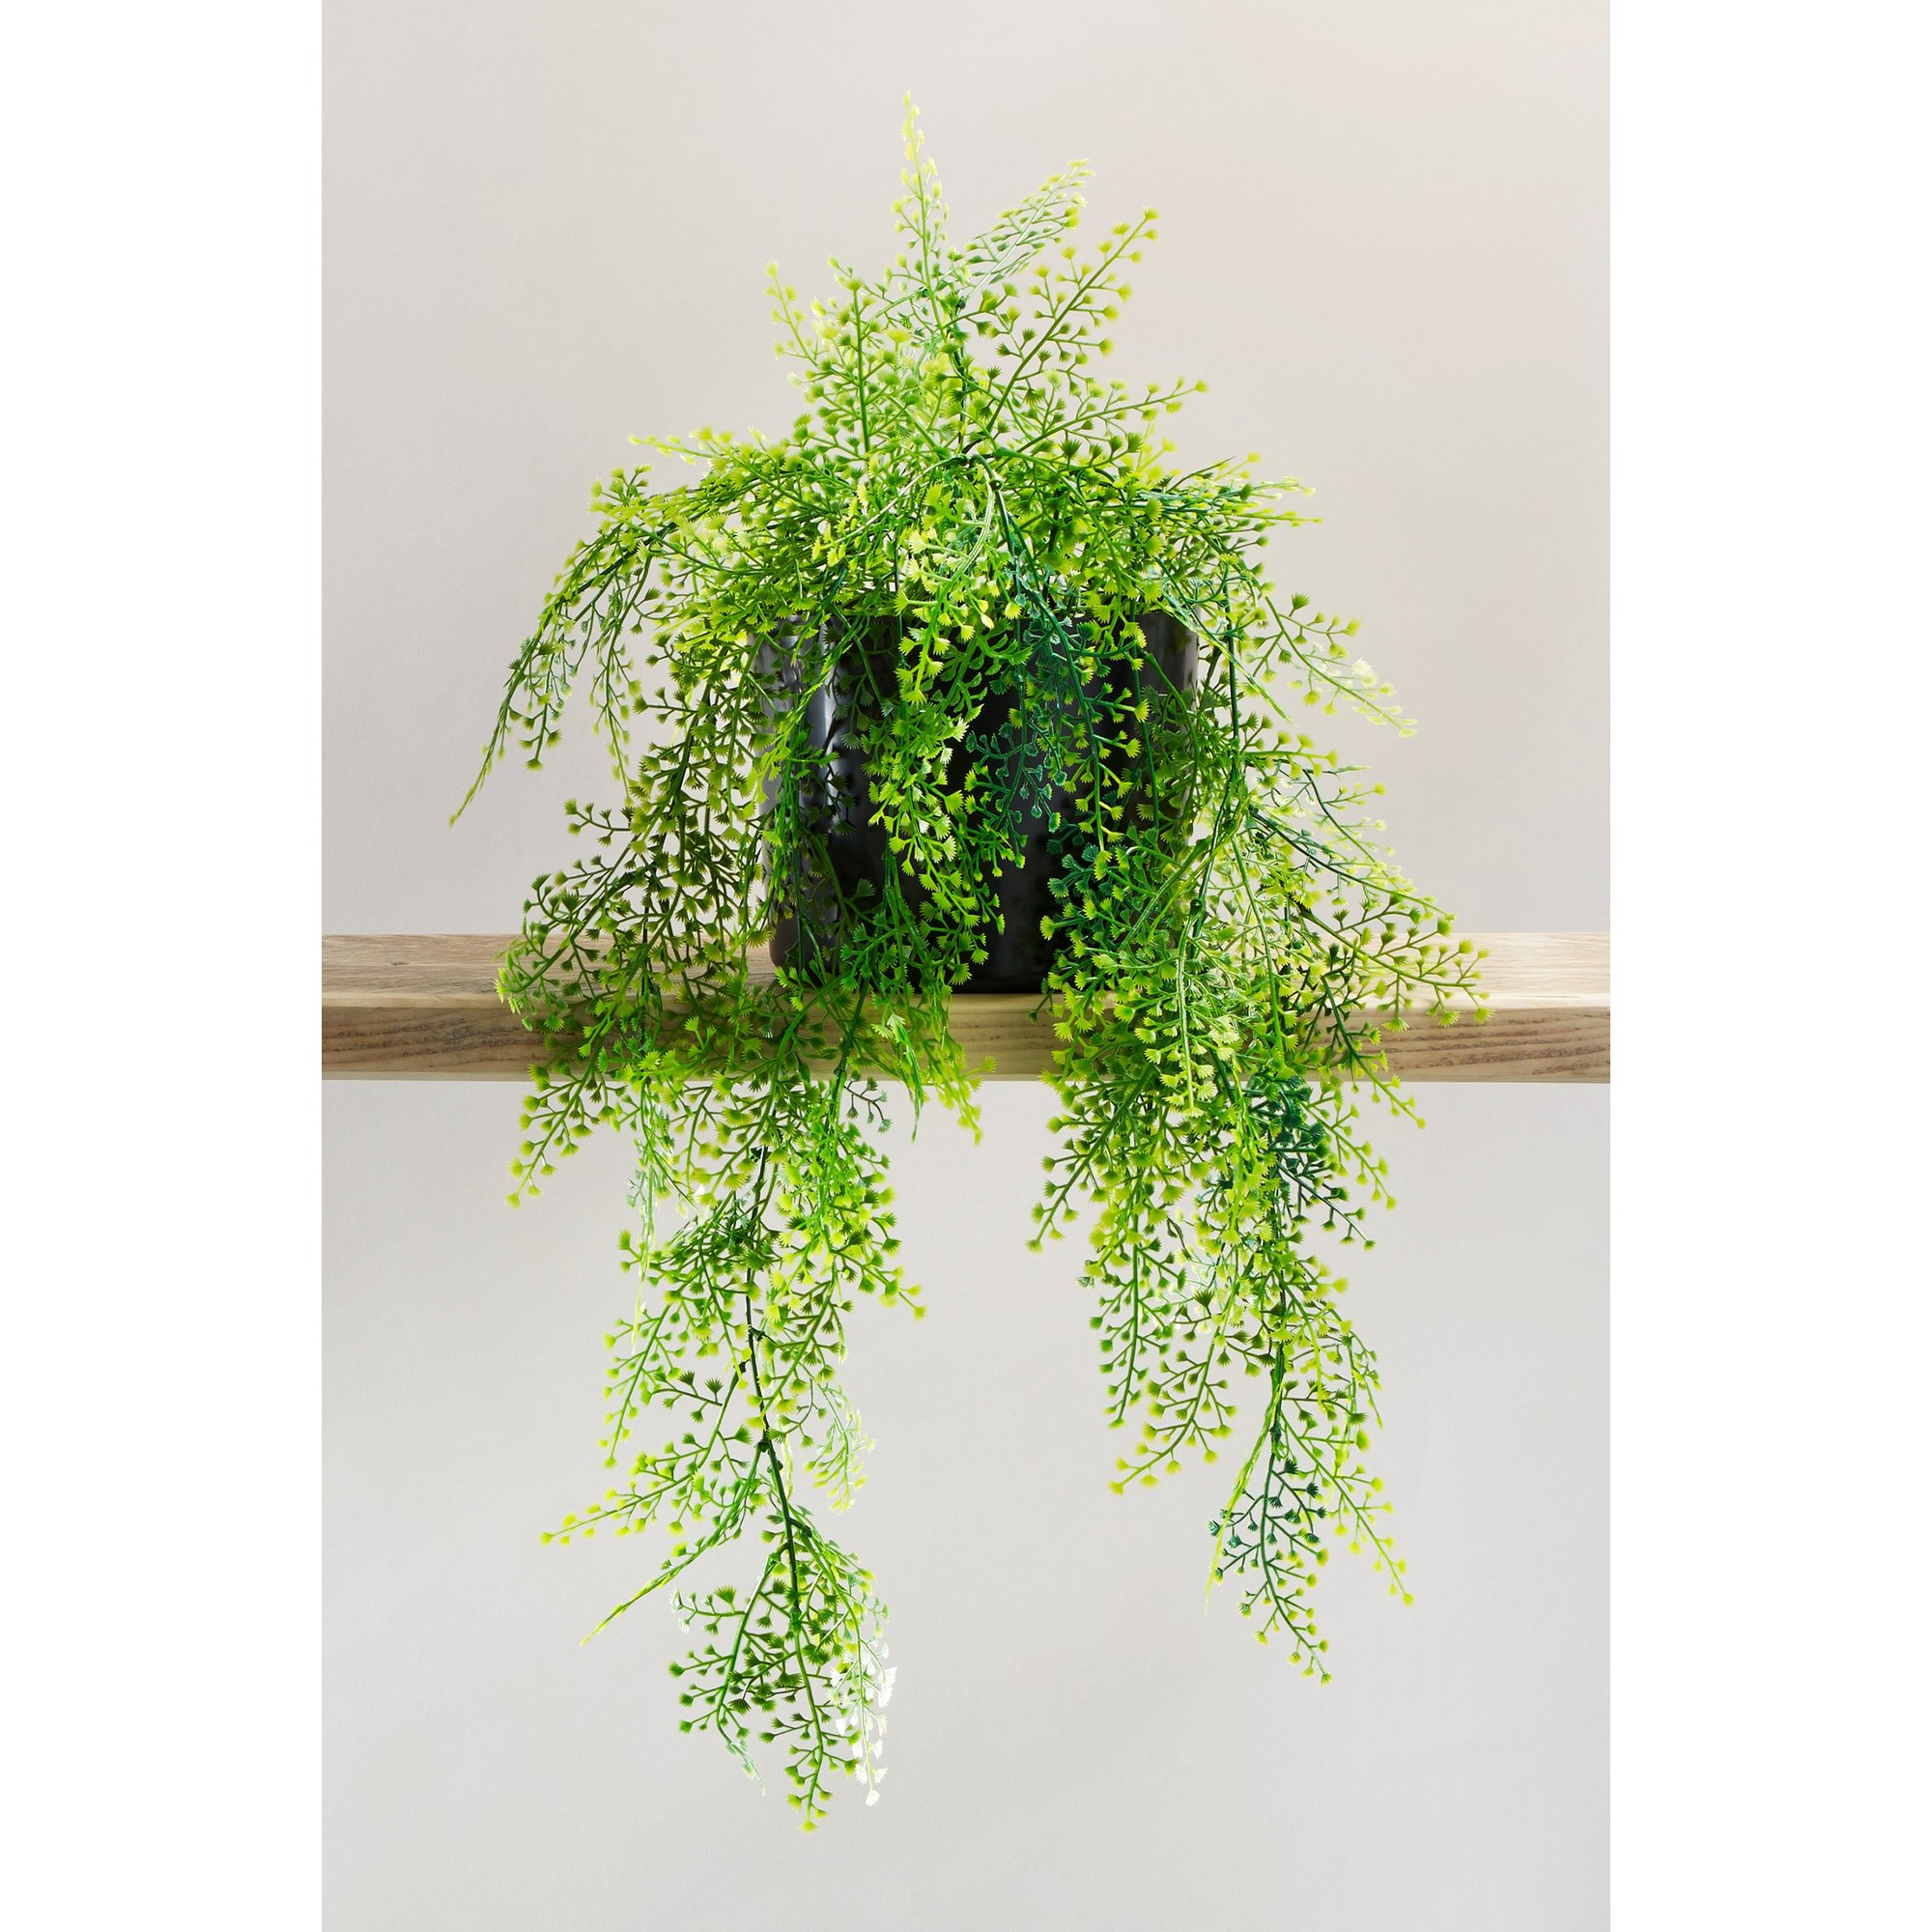 Image of Large Artificial Trailing Plant